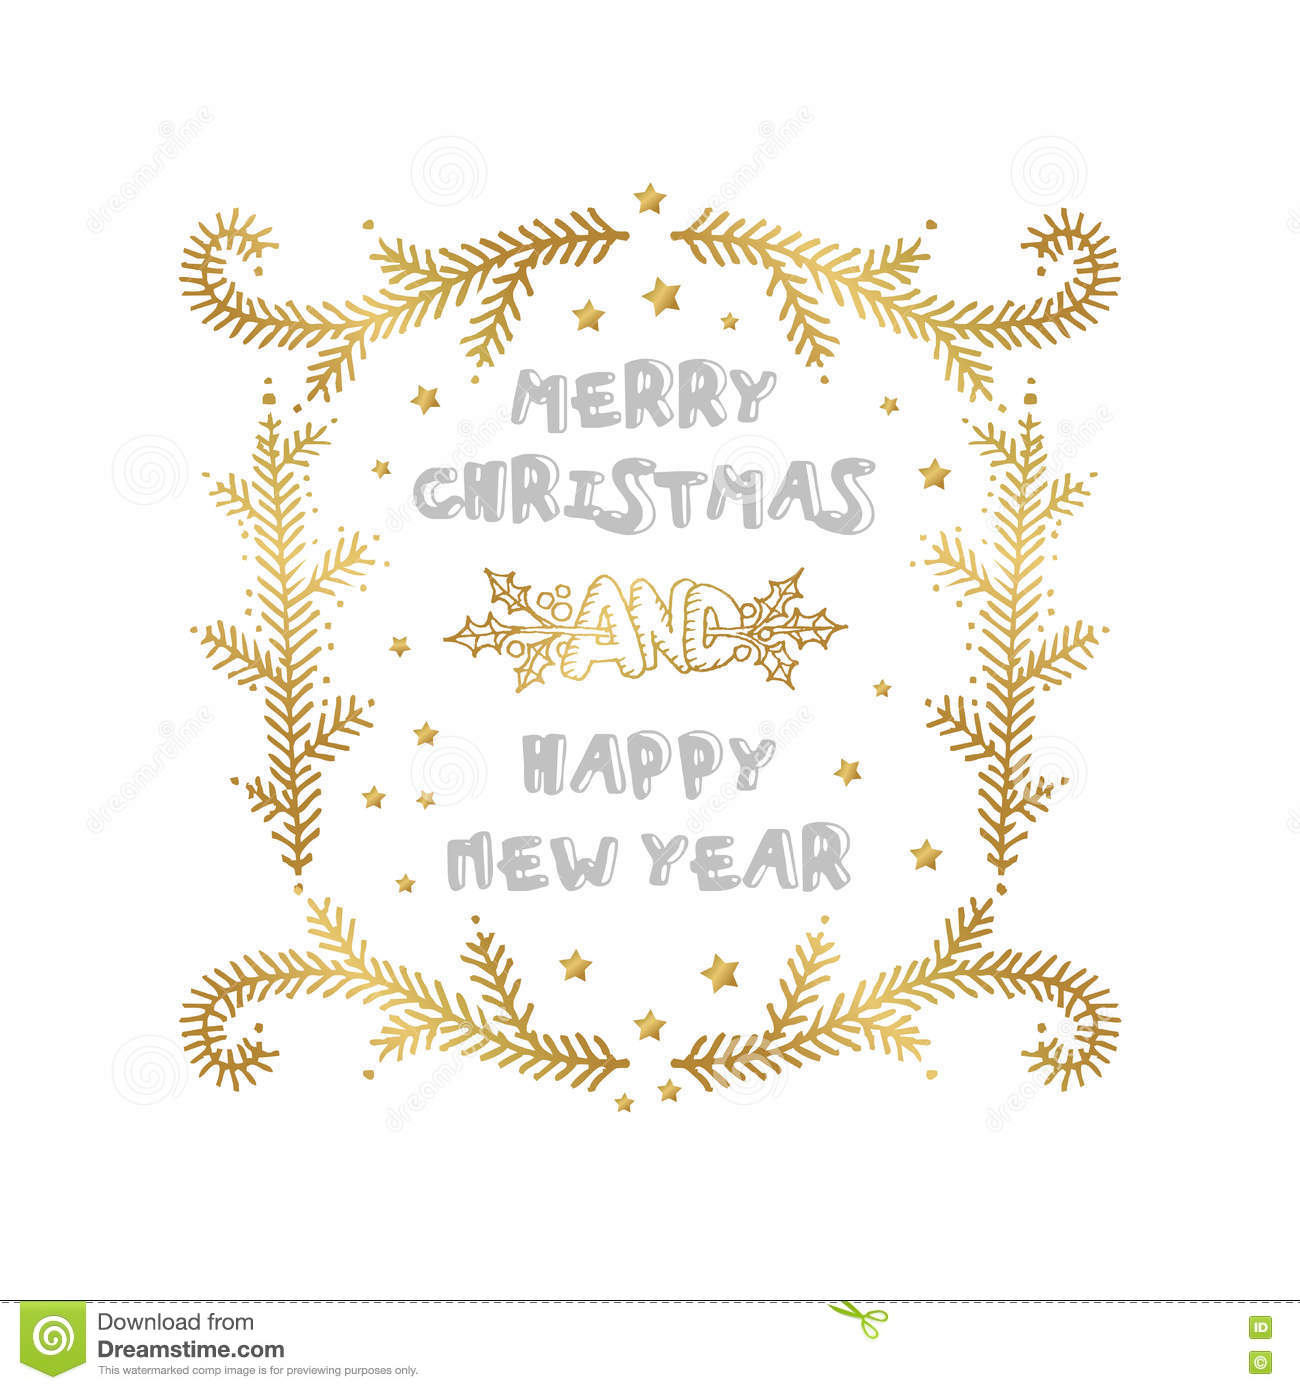 Merry Christmas And Happy New Year Words On White Background Stock ...